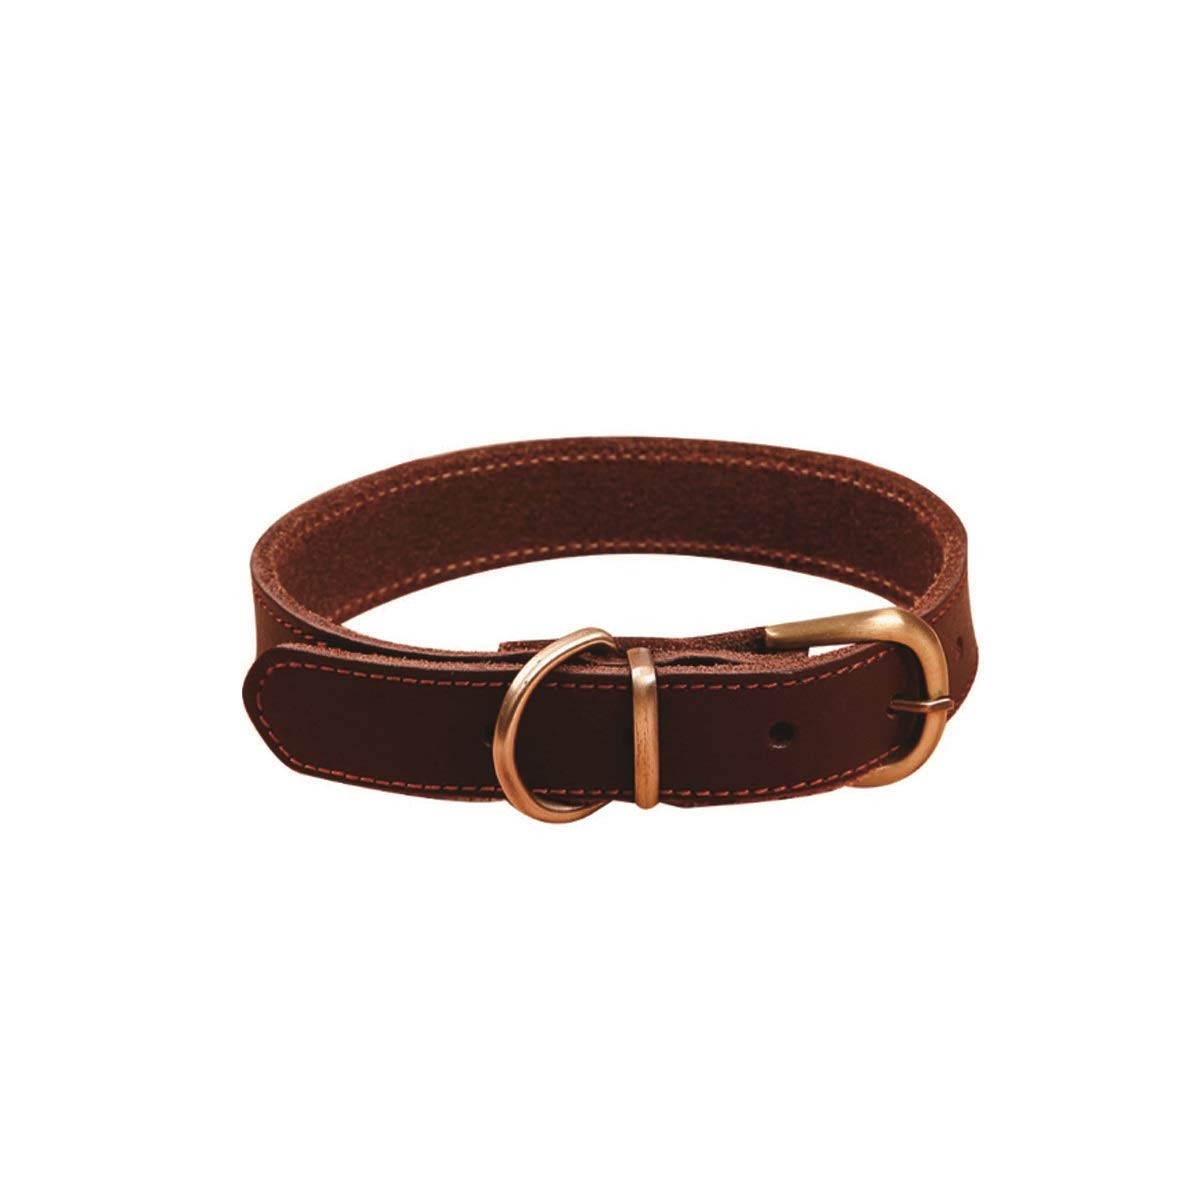 Ark brown M Ark brown M Tongboshi Pet Collar, Dog Collar, Collar, Leather Collar, Leather Jinmaotaidi Small Dog Medium Large Dog Supplies, Dark Brown, The Collar is Beautiful in Design and Unique in co